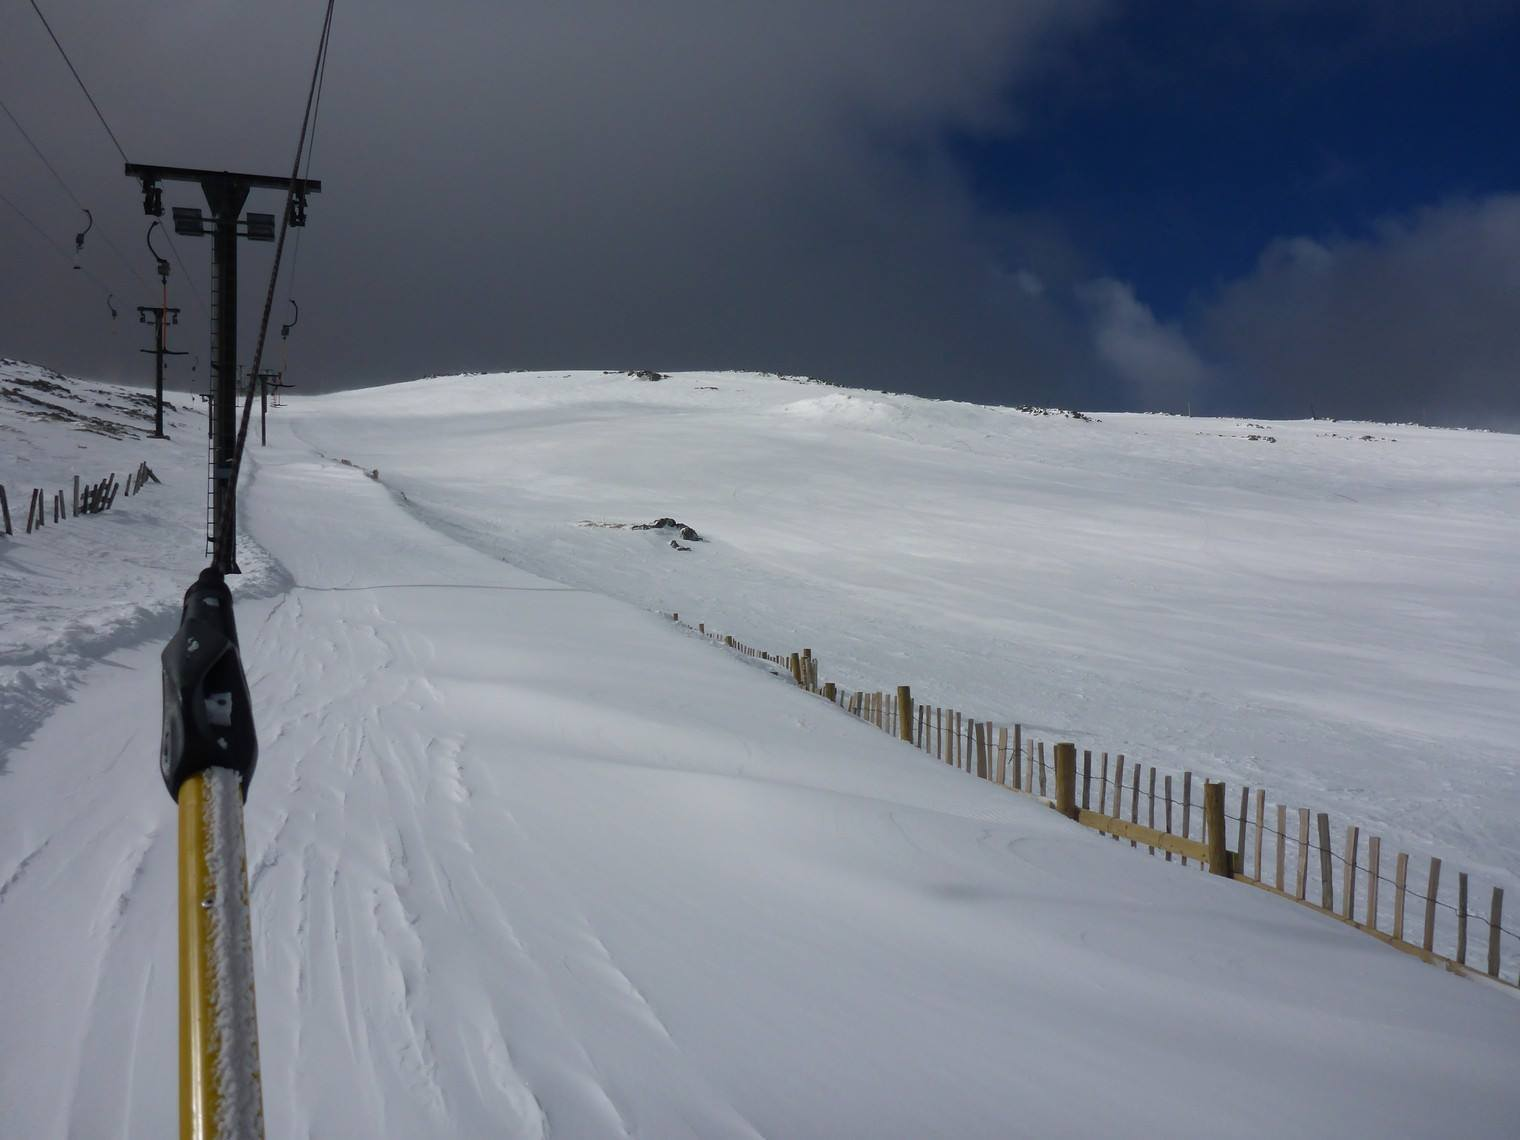 Great snow in Scotland for skiing and snowboarding this weekend